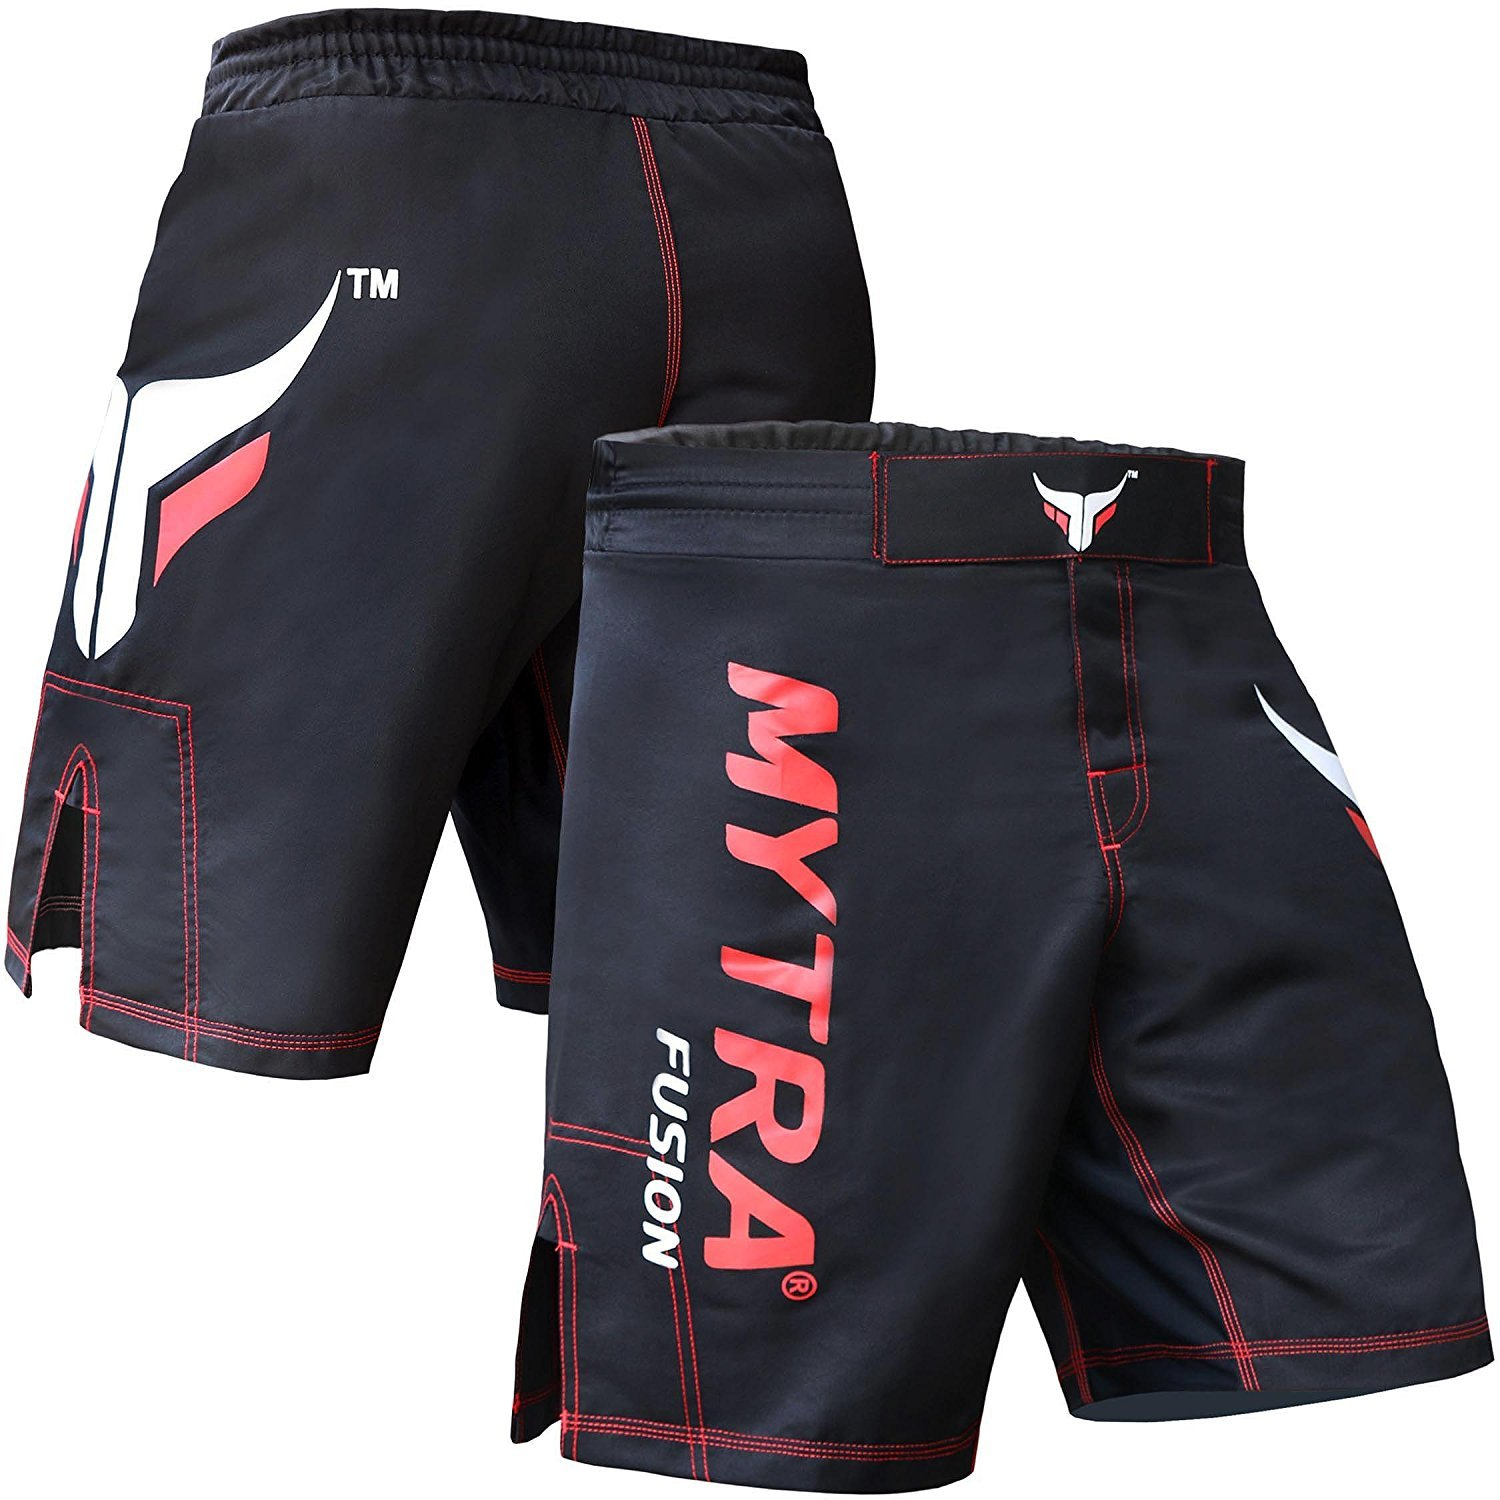 Mytra Fusion Black MMA Shorts Combat Shorts for Boxing MMA Muay Thai Gym Workout Bjj Thai Trunks Satin Shorts Mix Martial Arts Cage Fighting Grappling Sparring Training Punching Kick Boxing Shorts Farabi Sports